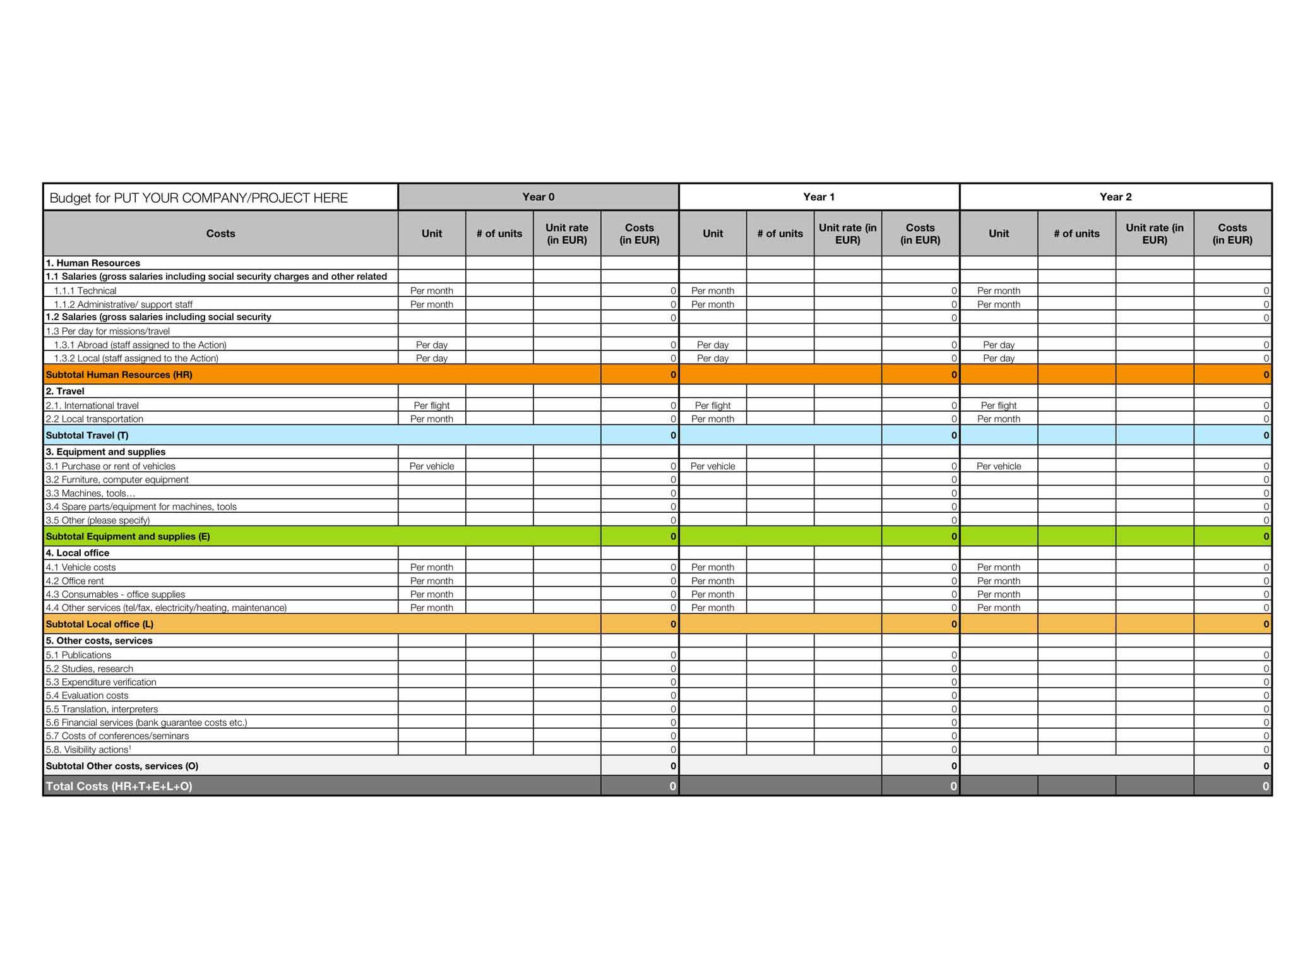 Ipad Pro Excel Spreadsheet For Templates For Excel For Ipad, Iphone, And Ipod Touch  Made For Use